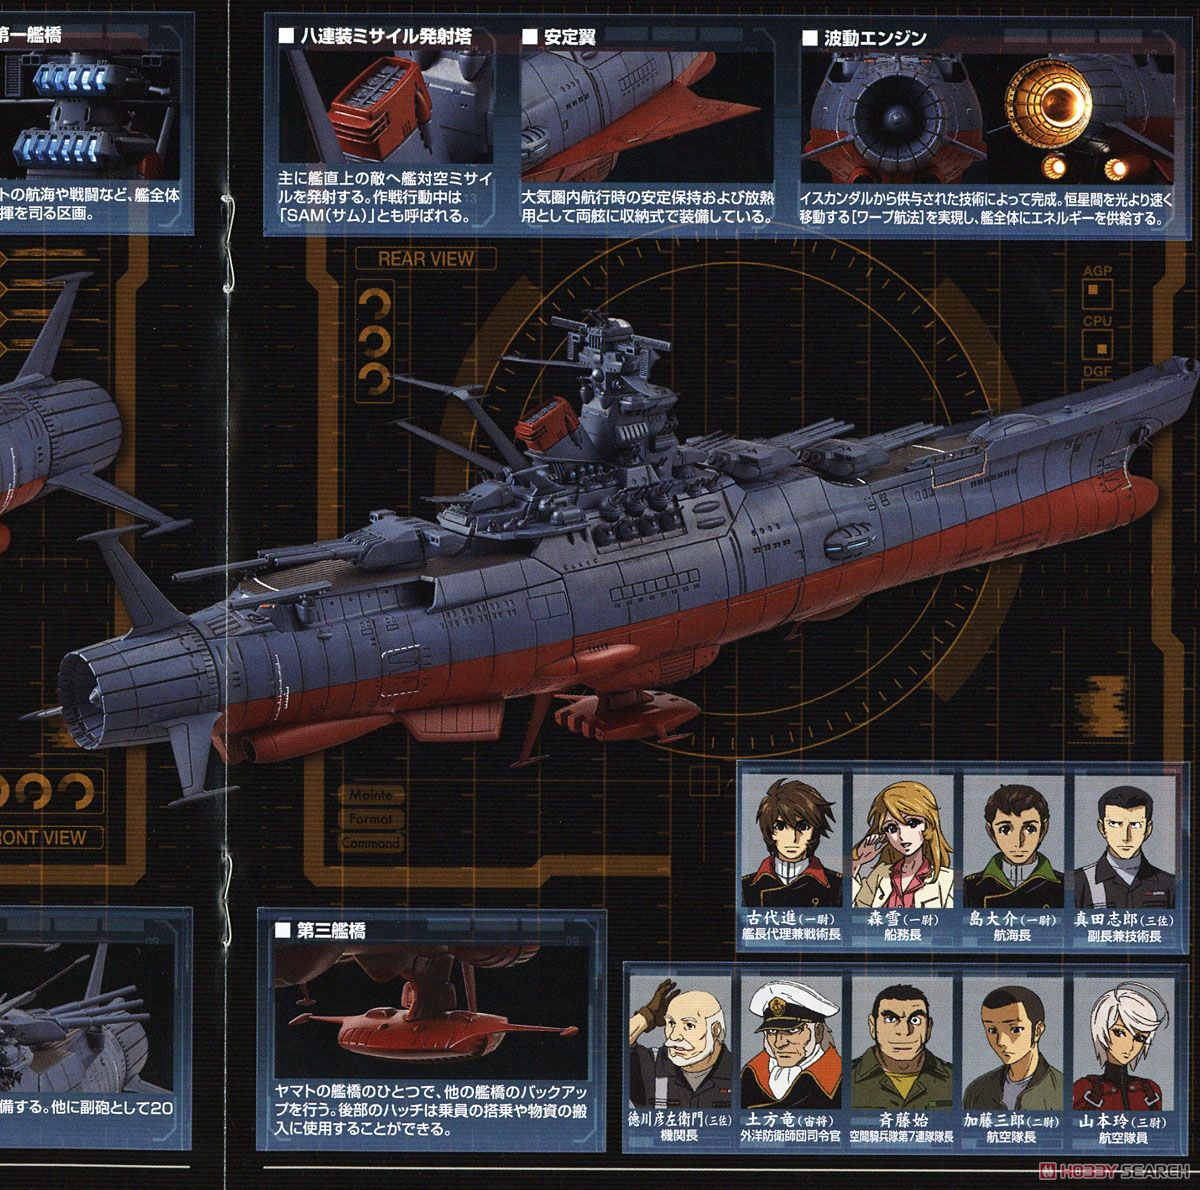 Space Battleship Yamato 2002 (1/1000) (Plastic model) About item3